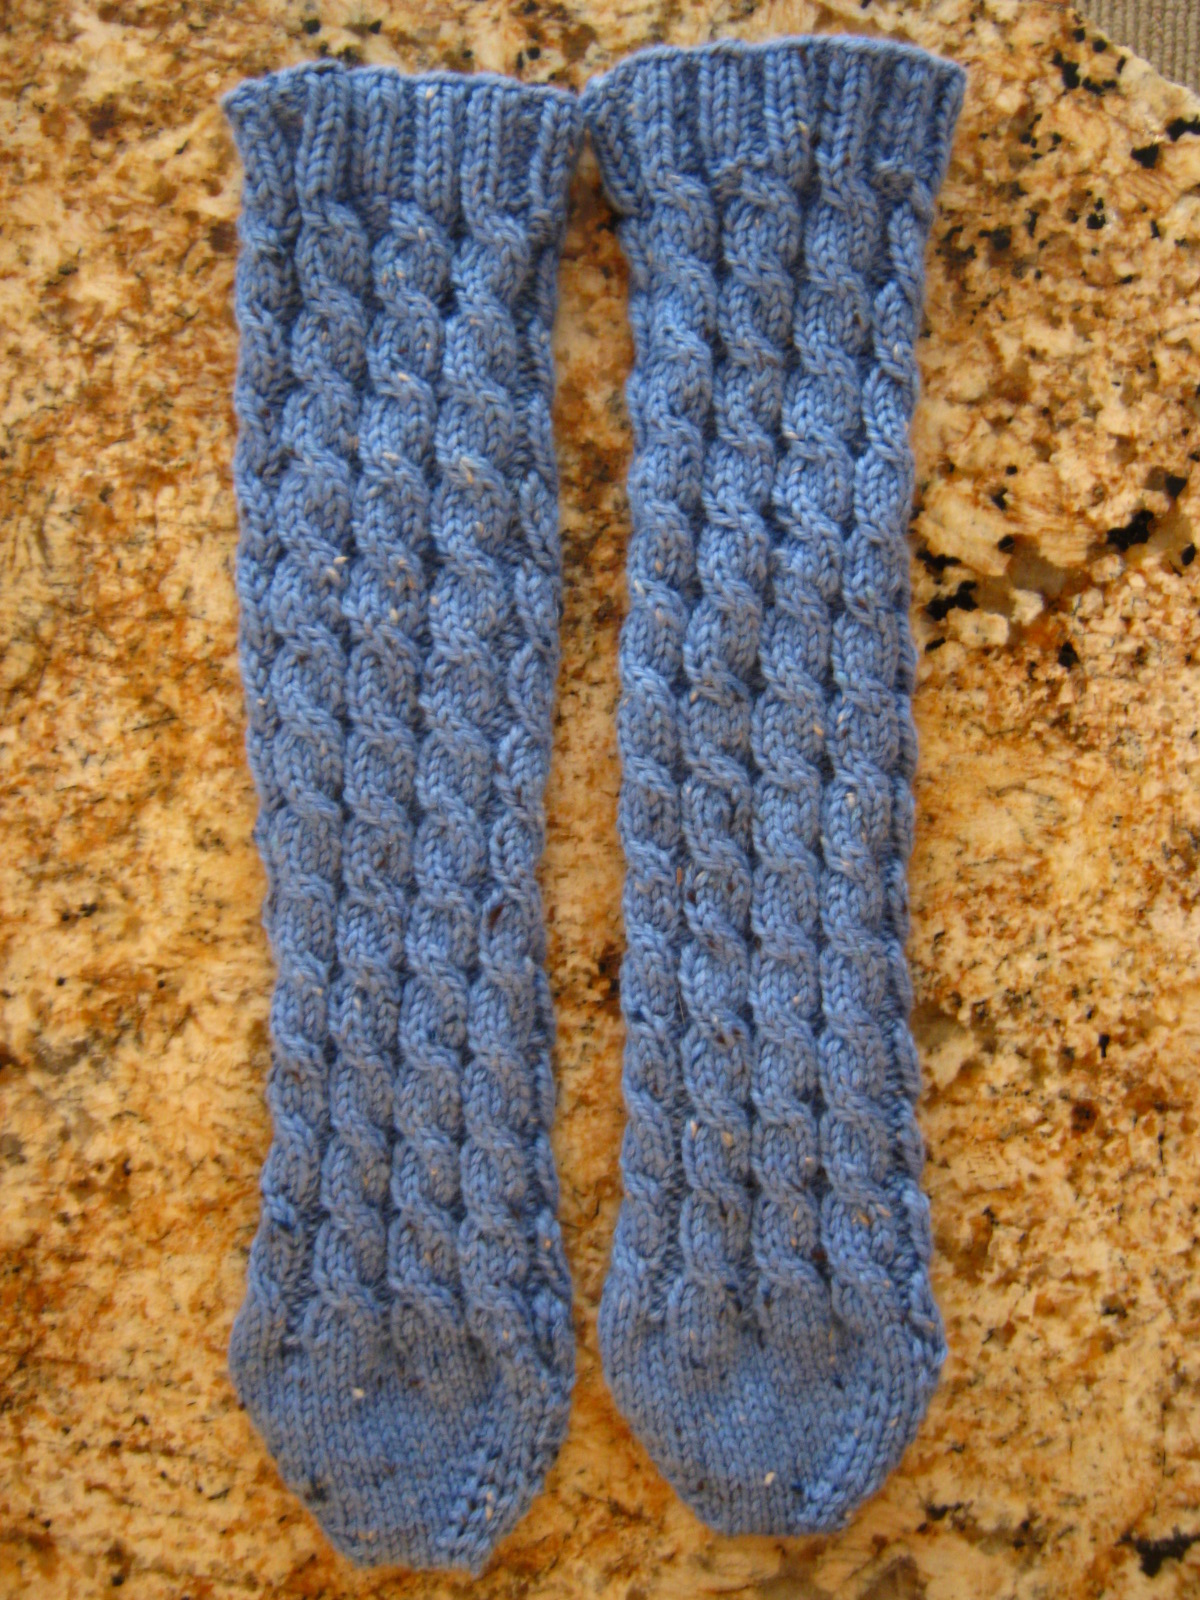 Easy Bed Socks Knitting Pattern 2 Needles : Holly Marie Knits: New Free Pattern! Toe-up Cabled Bed Socks